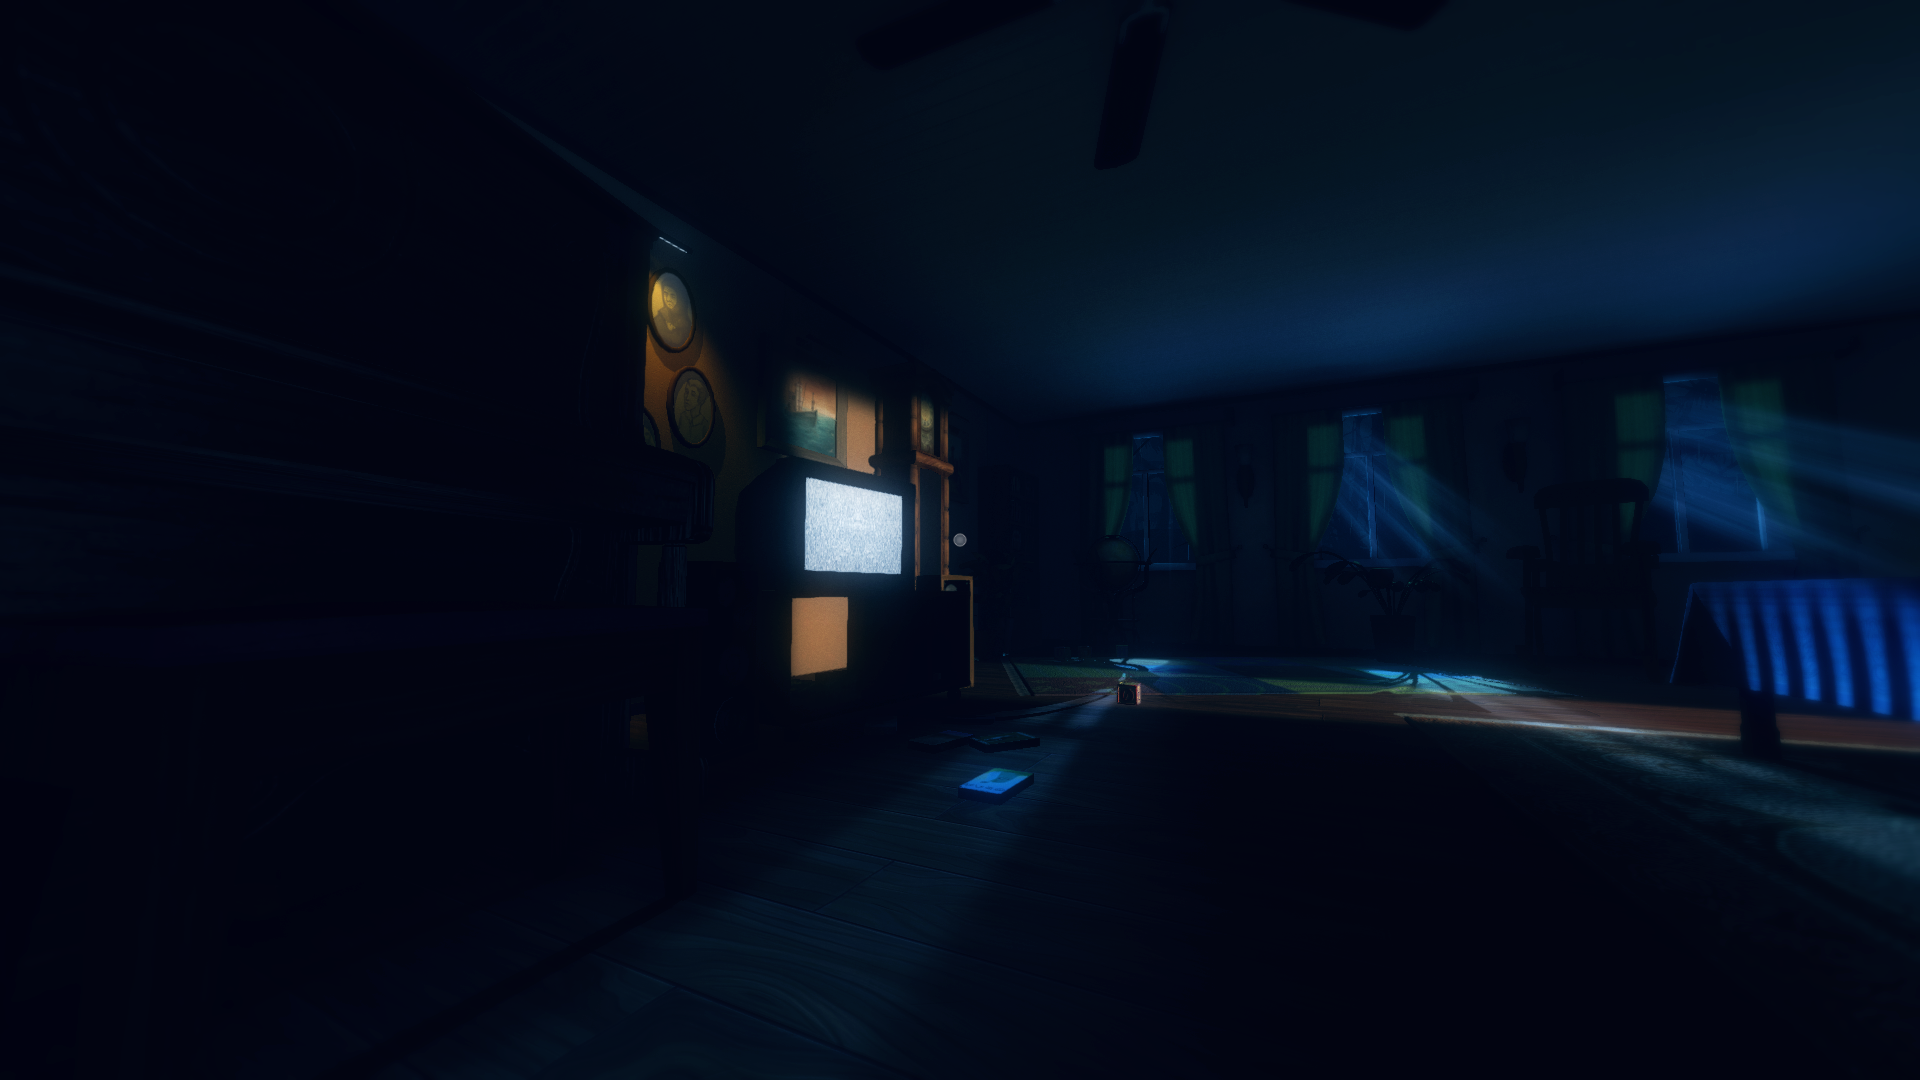 Living Room Night among the sleep screenshots for windows - mobygames